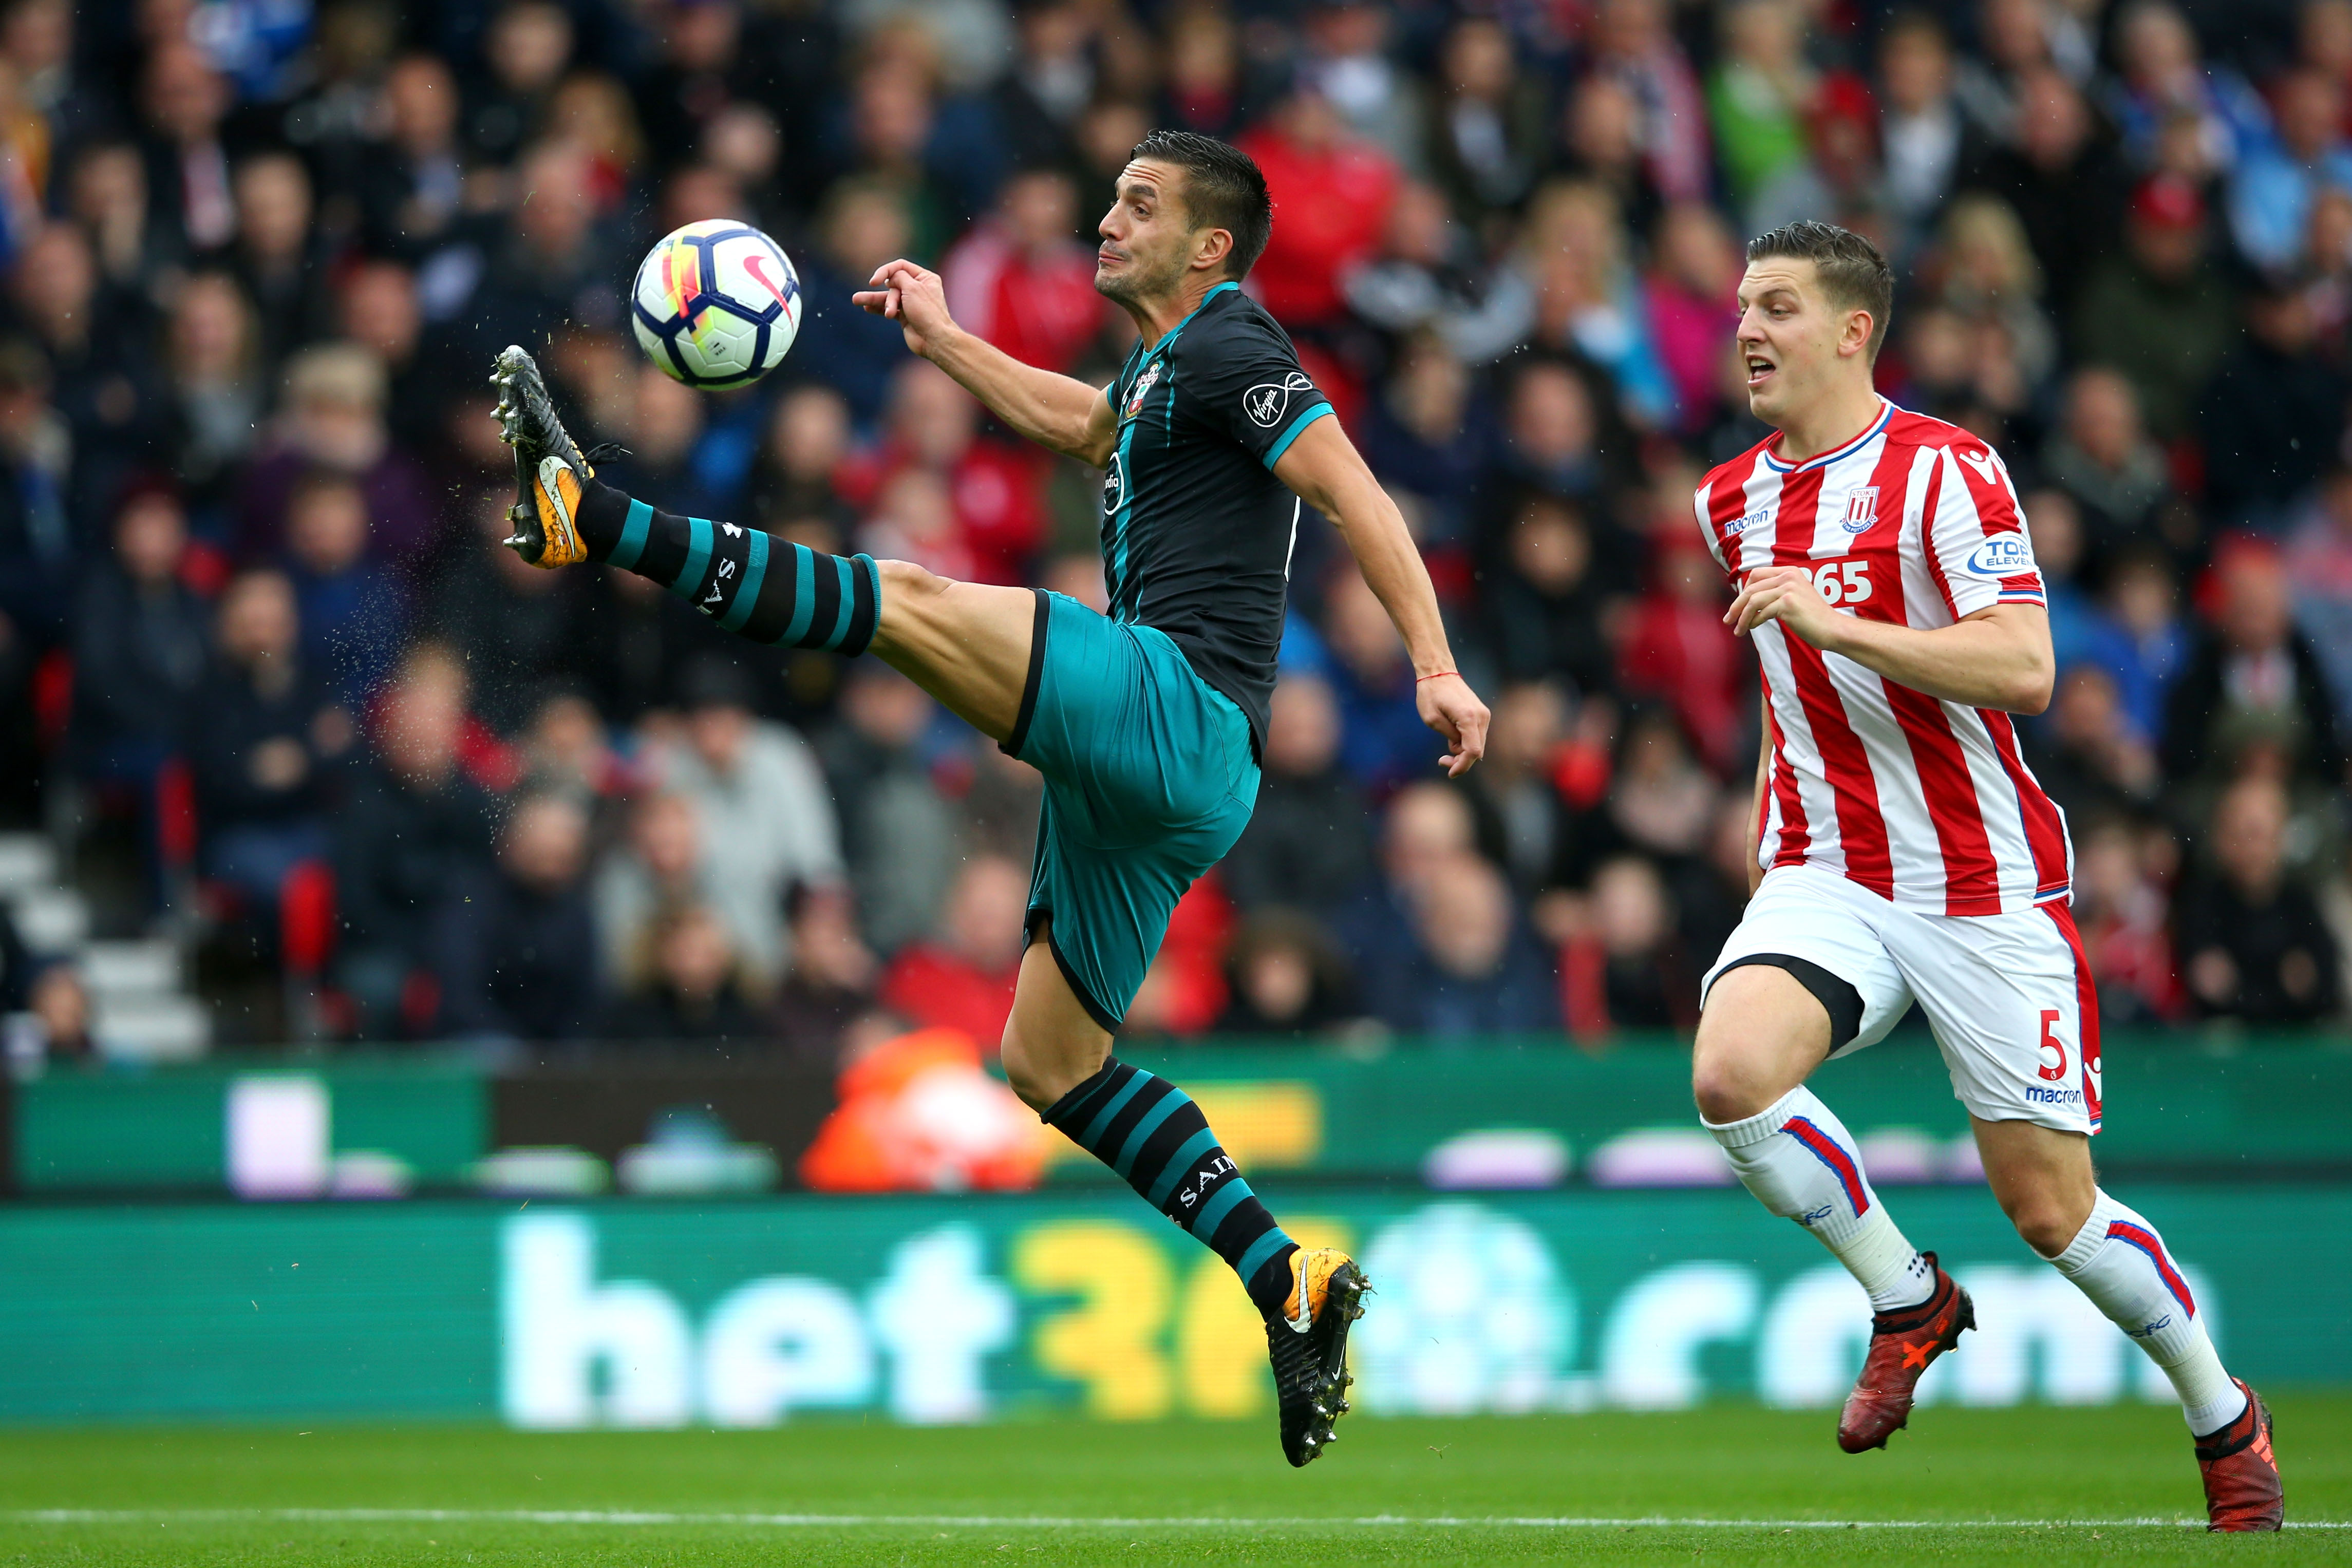 Stoke and Saints showed why they are in a relegation tug after a bore draw.